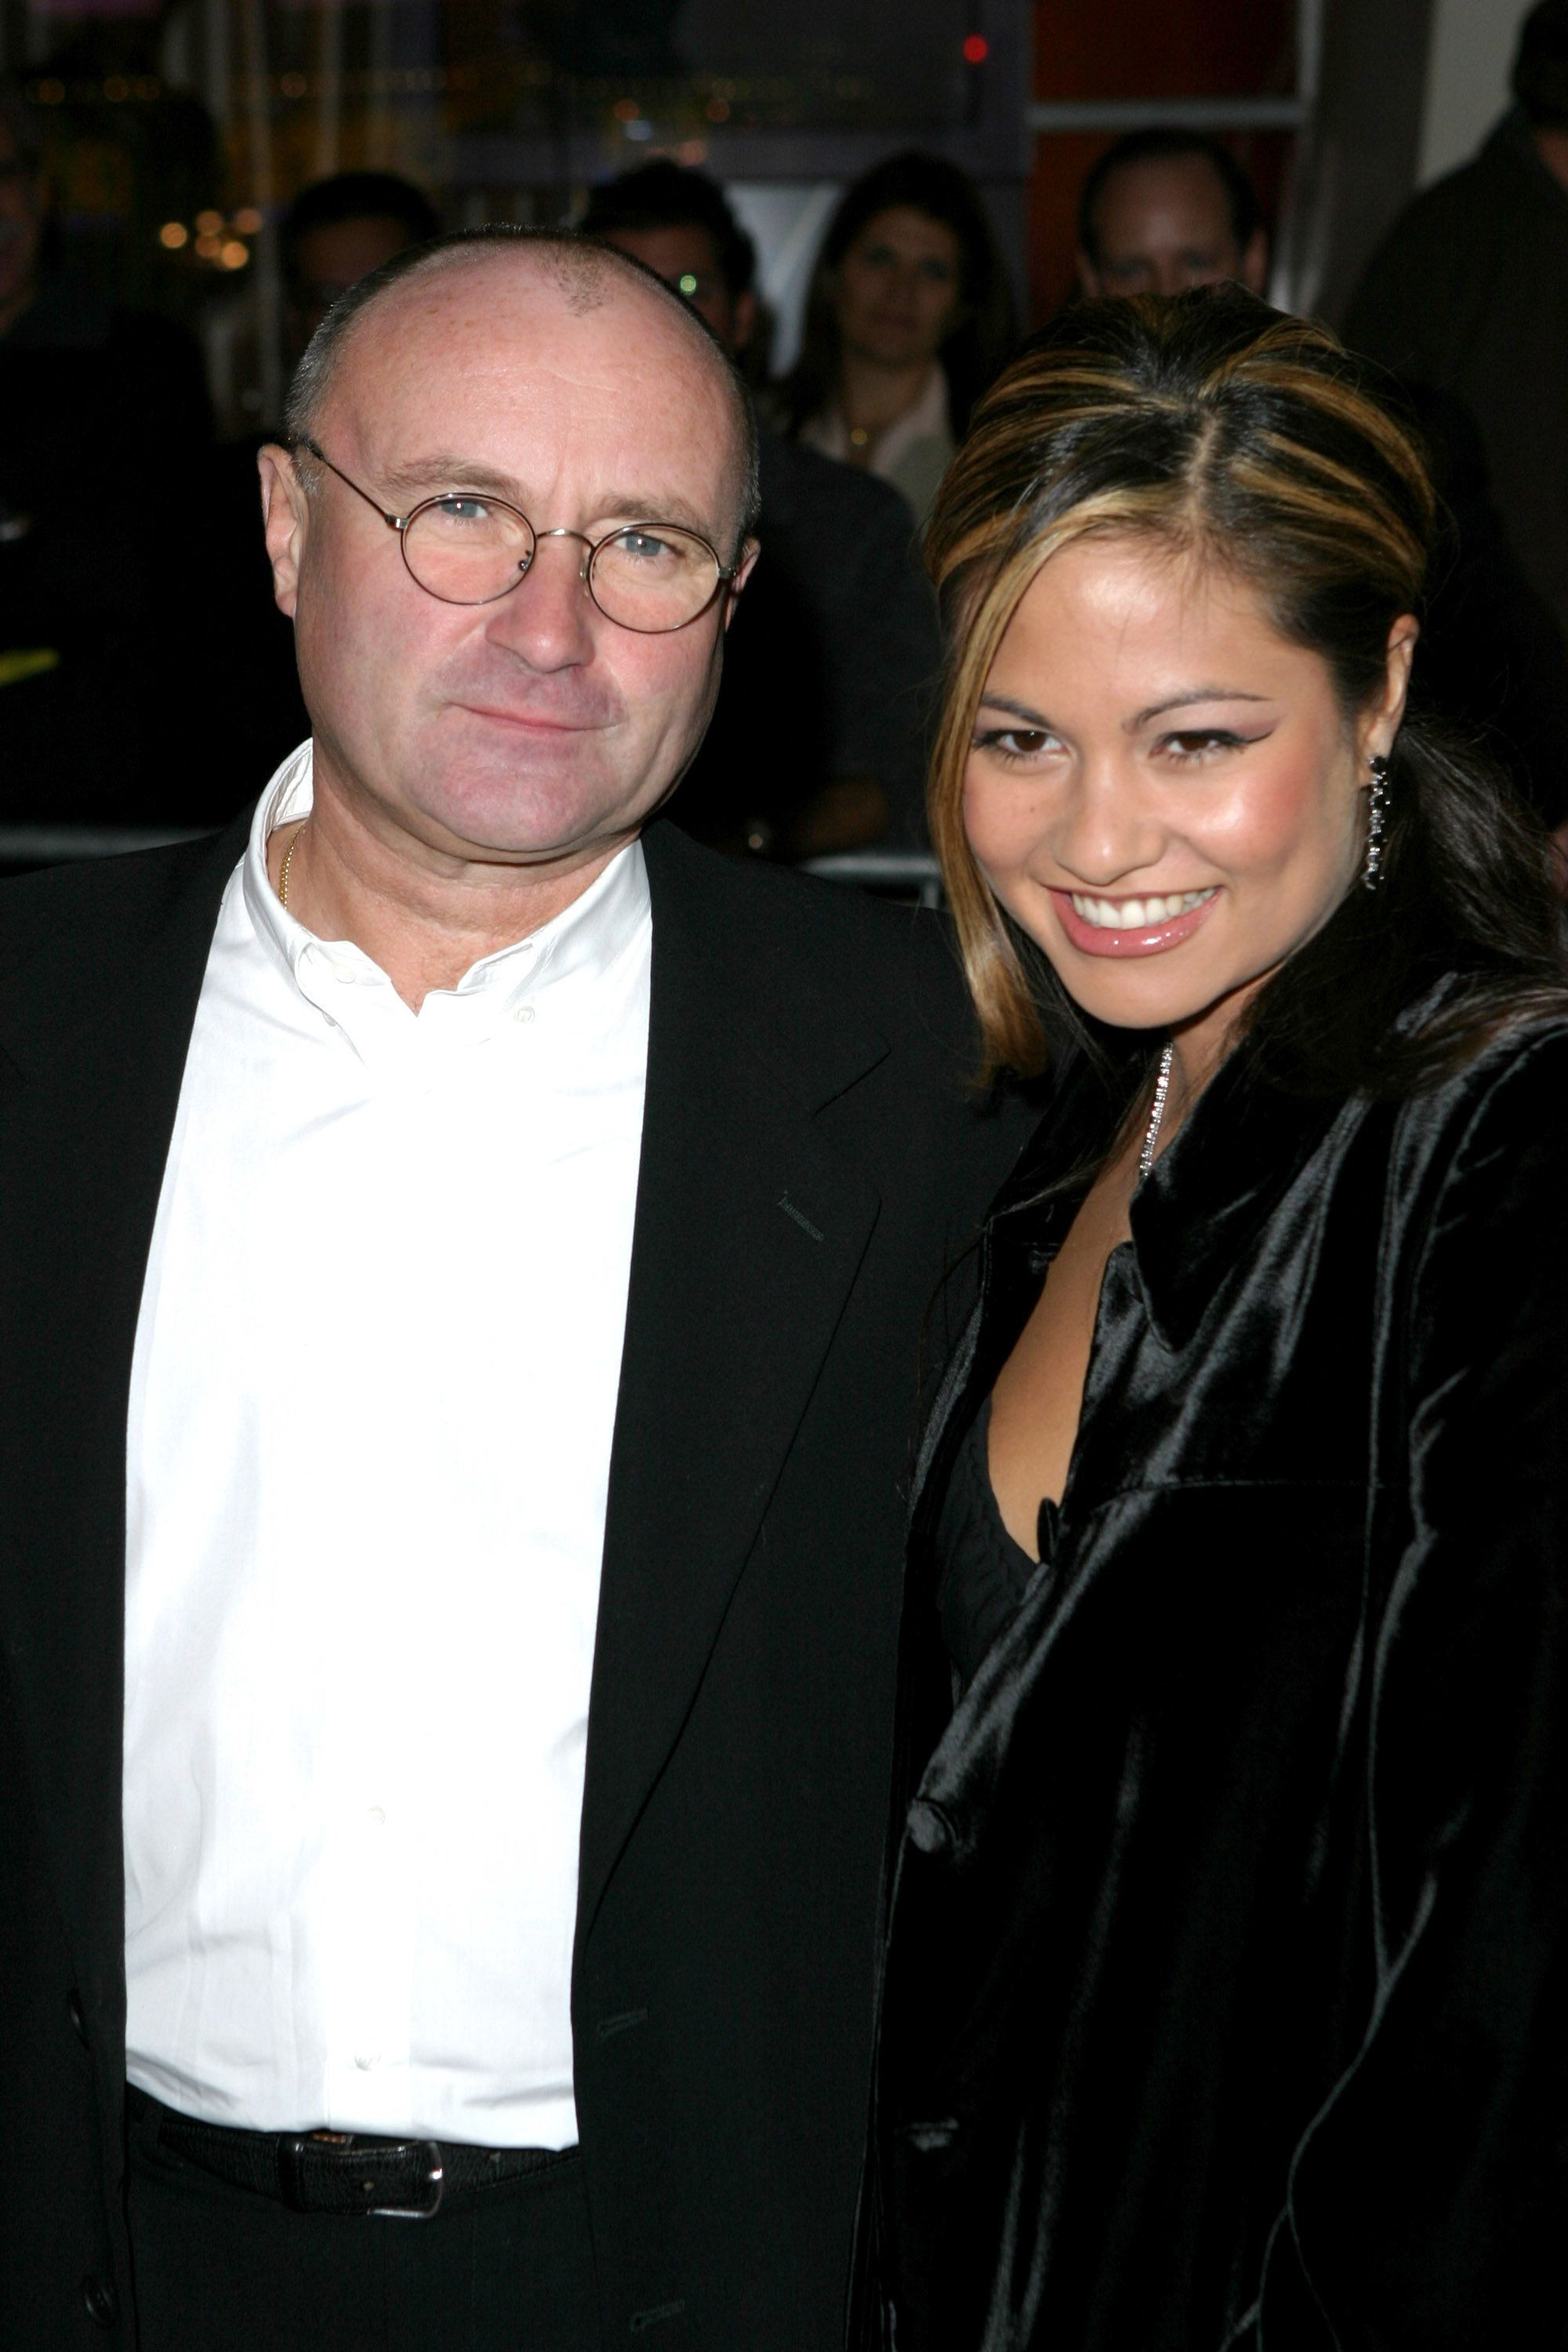 Phil Collins and wife Orianne Cevey (Photo by James Devaney/WireImage)